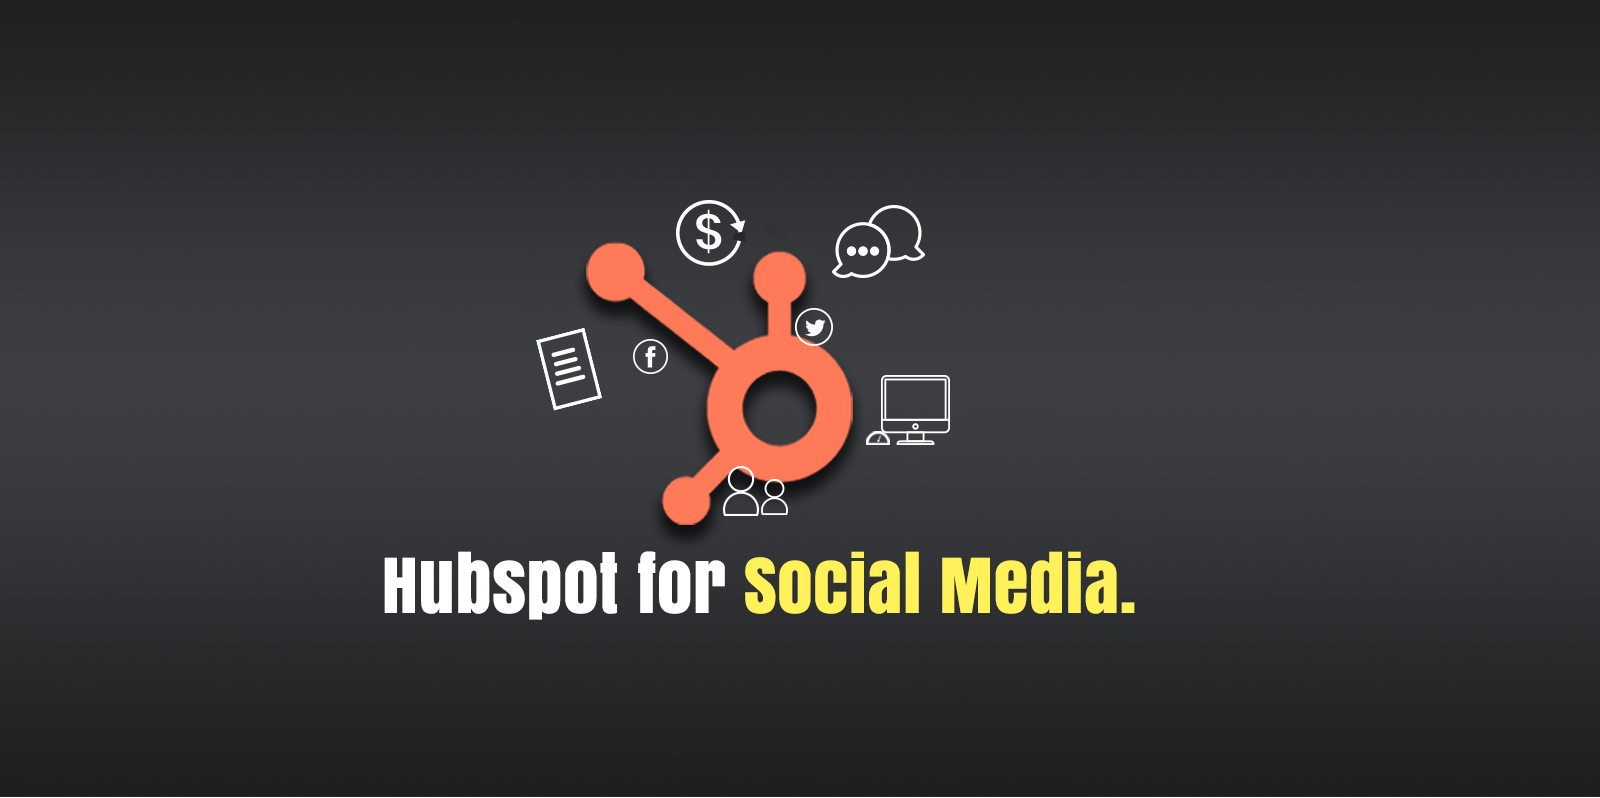 hubspot-benefits-social-media-1